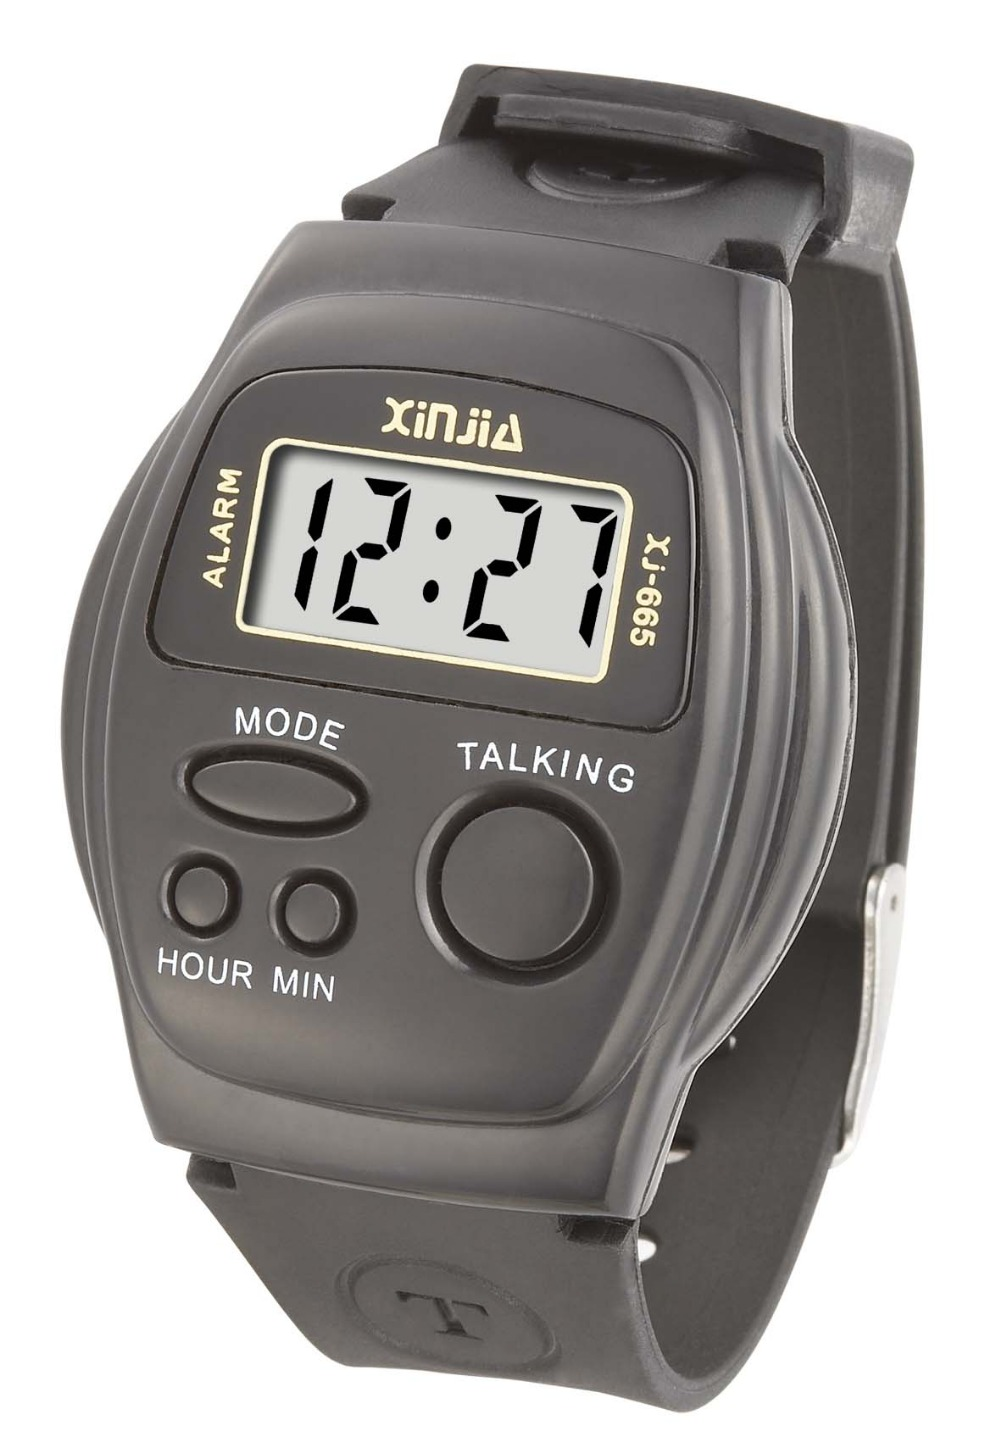 dementia read clocks large see patients blinds s men watch to elderly the watches for easy talking living blind aids